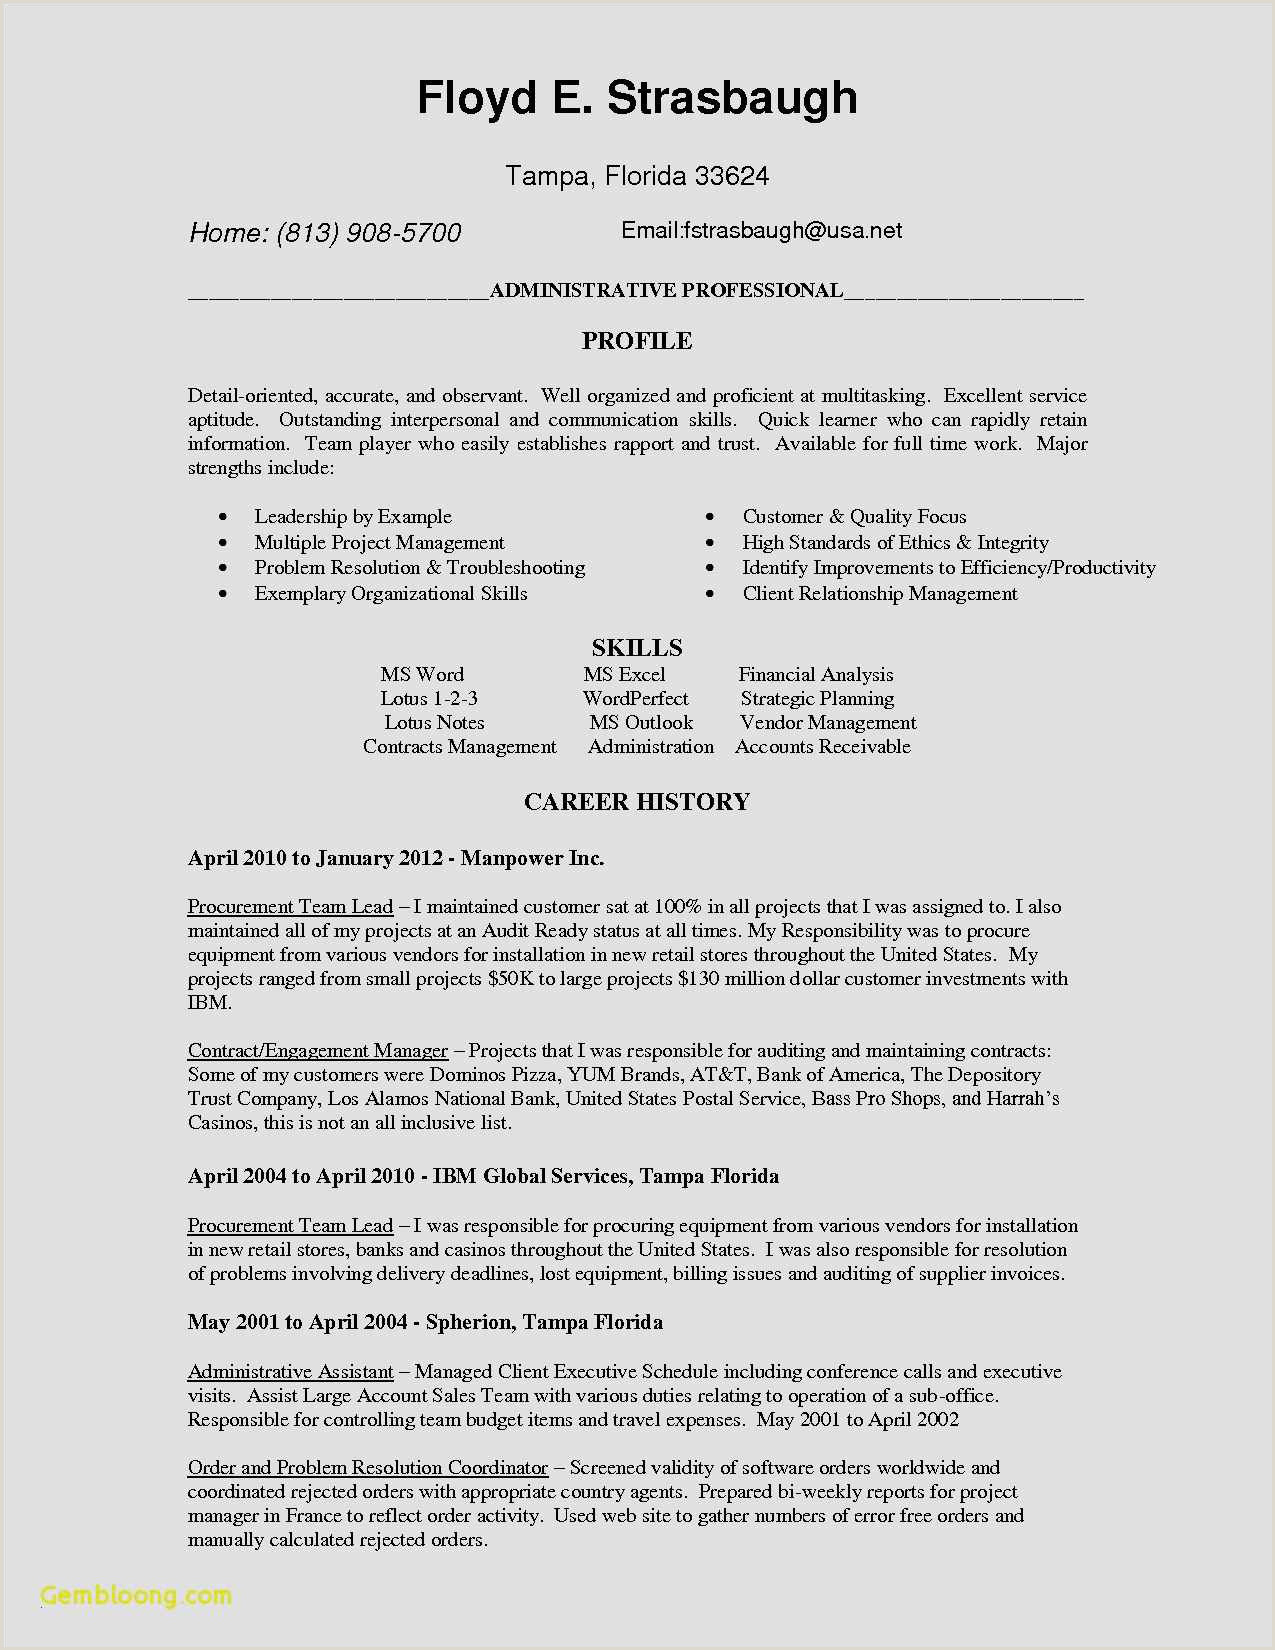 Cv Modele original Simple Cv format Simple Word Xenakisworld